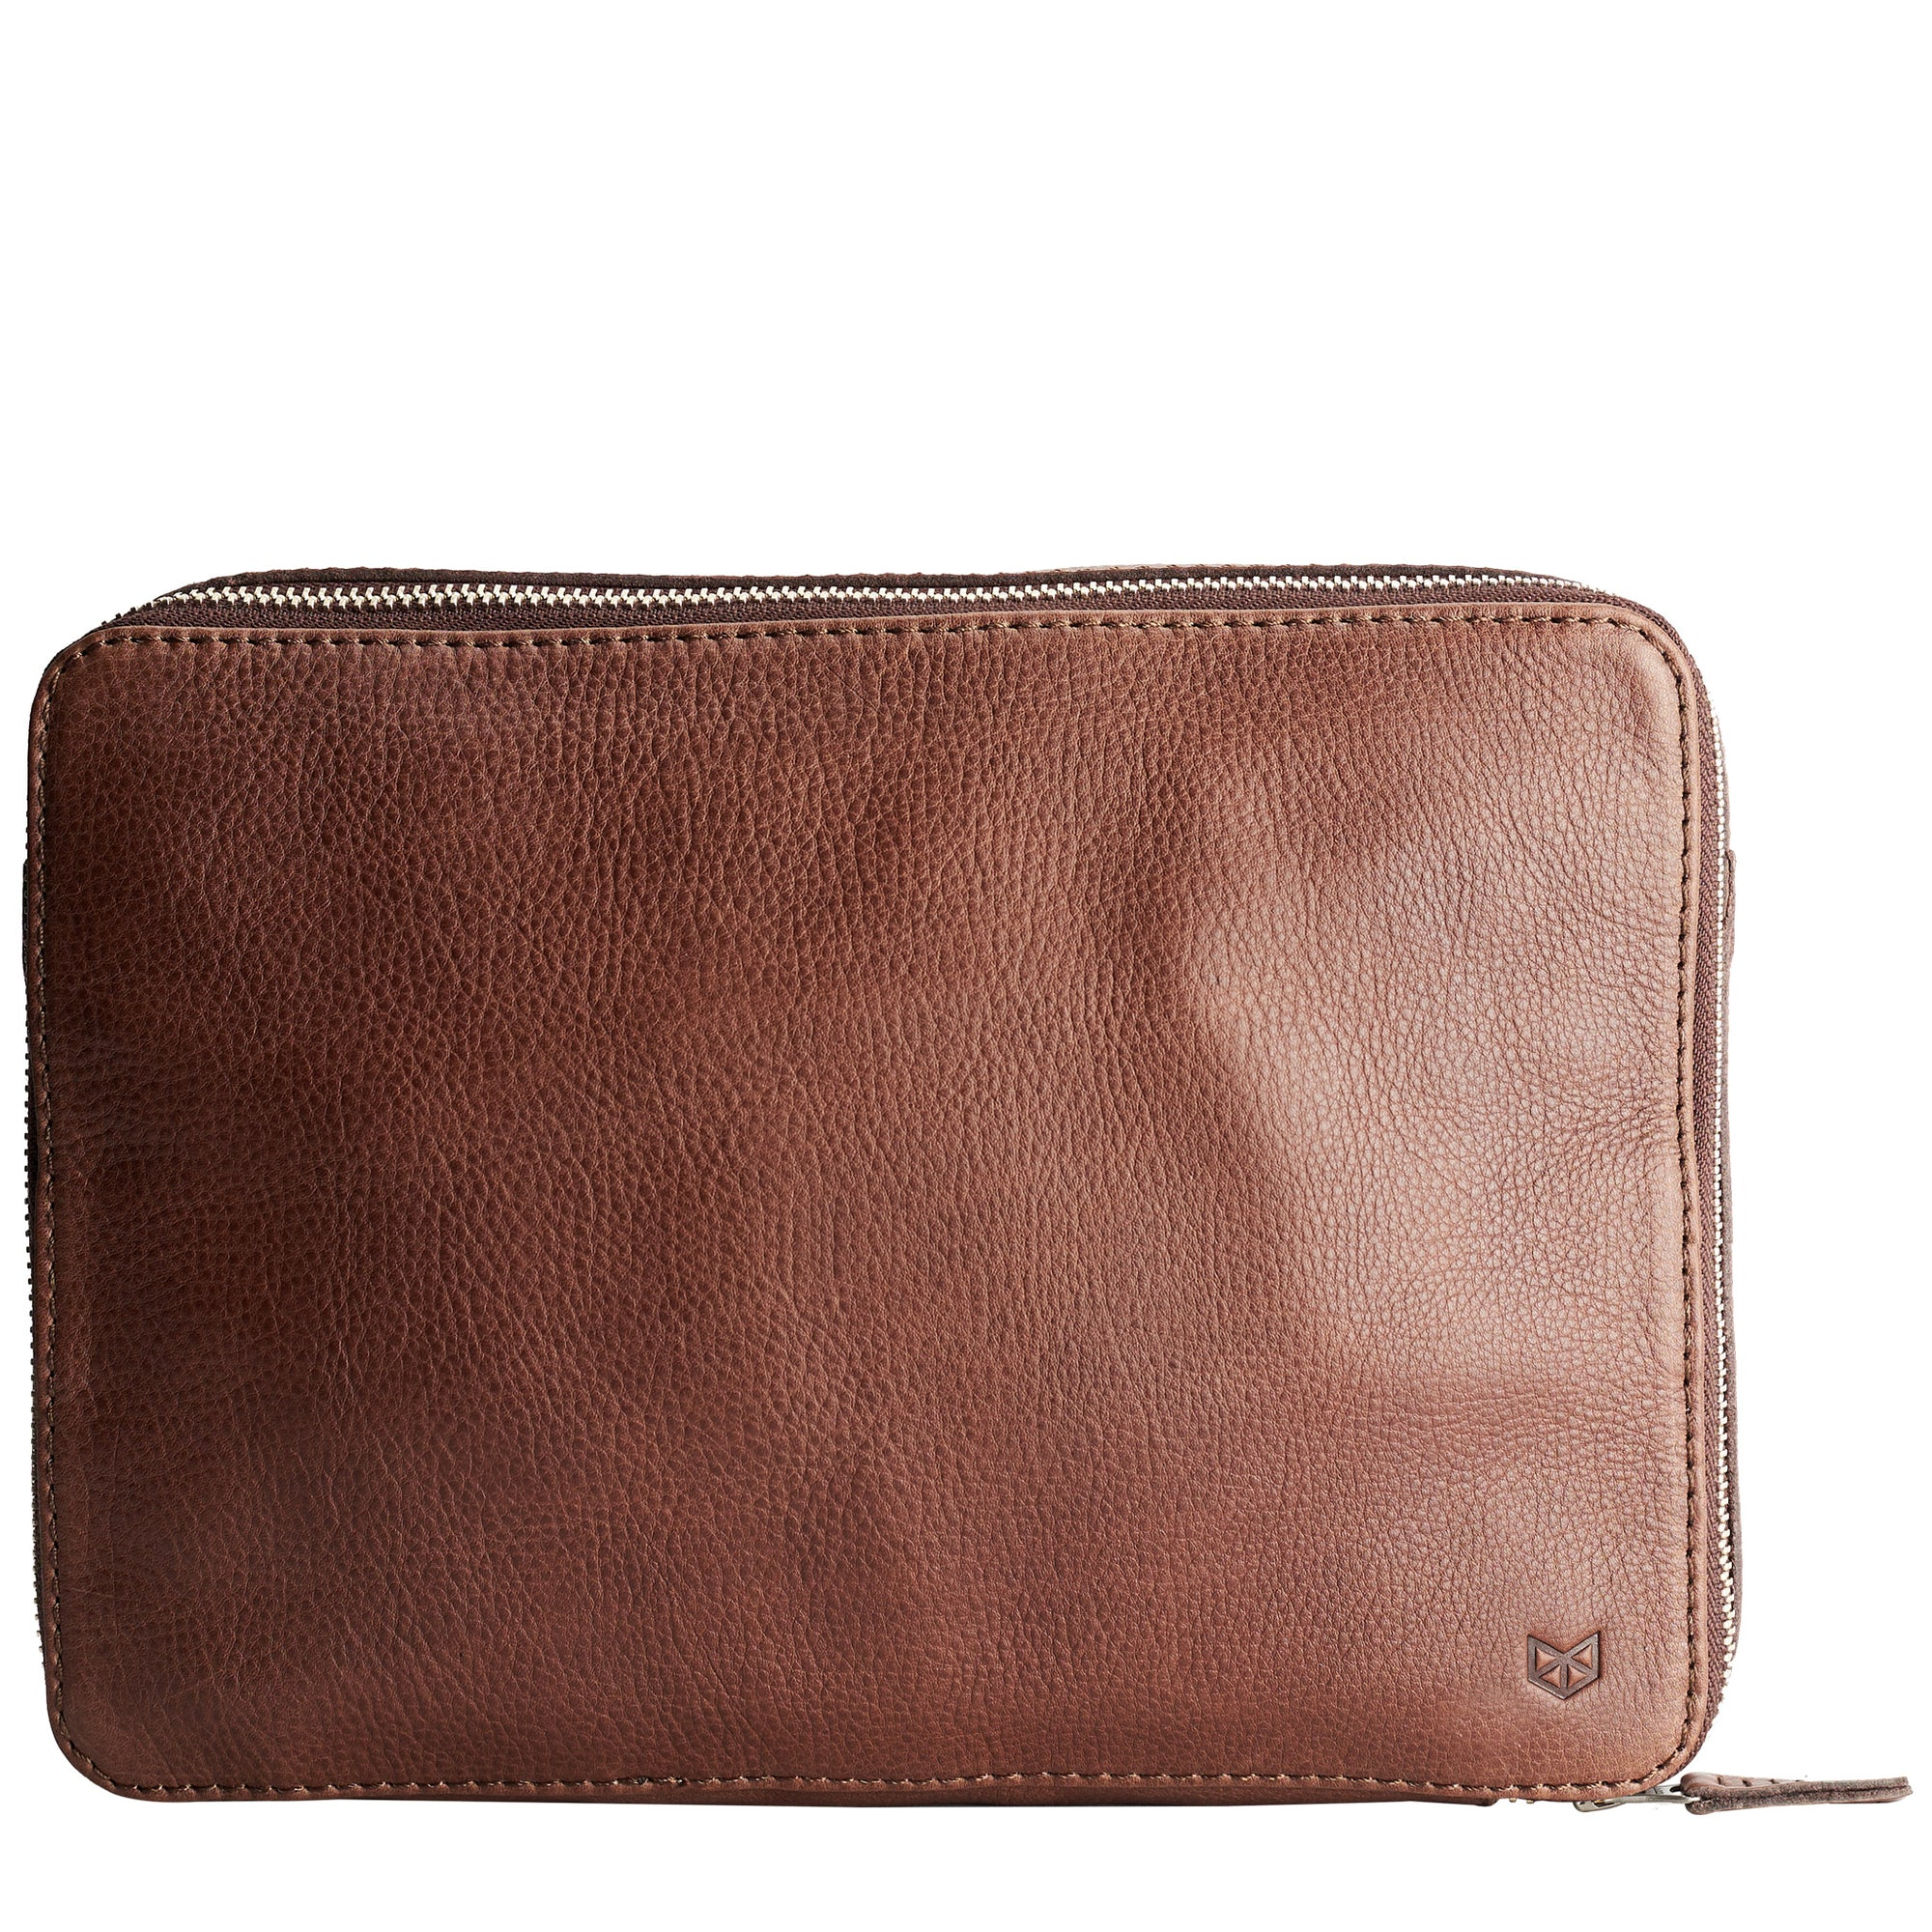 Men's brown leather tech laptop tablet bag is perfect to travel organized.